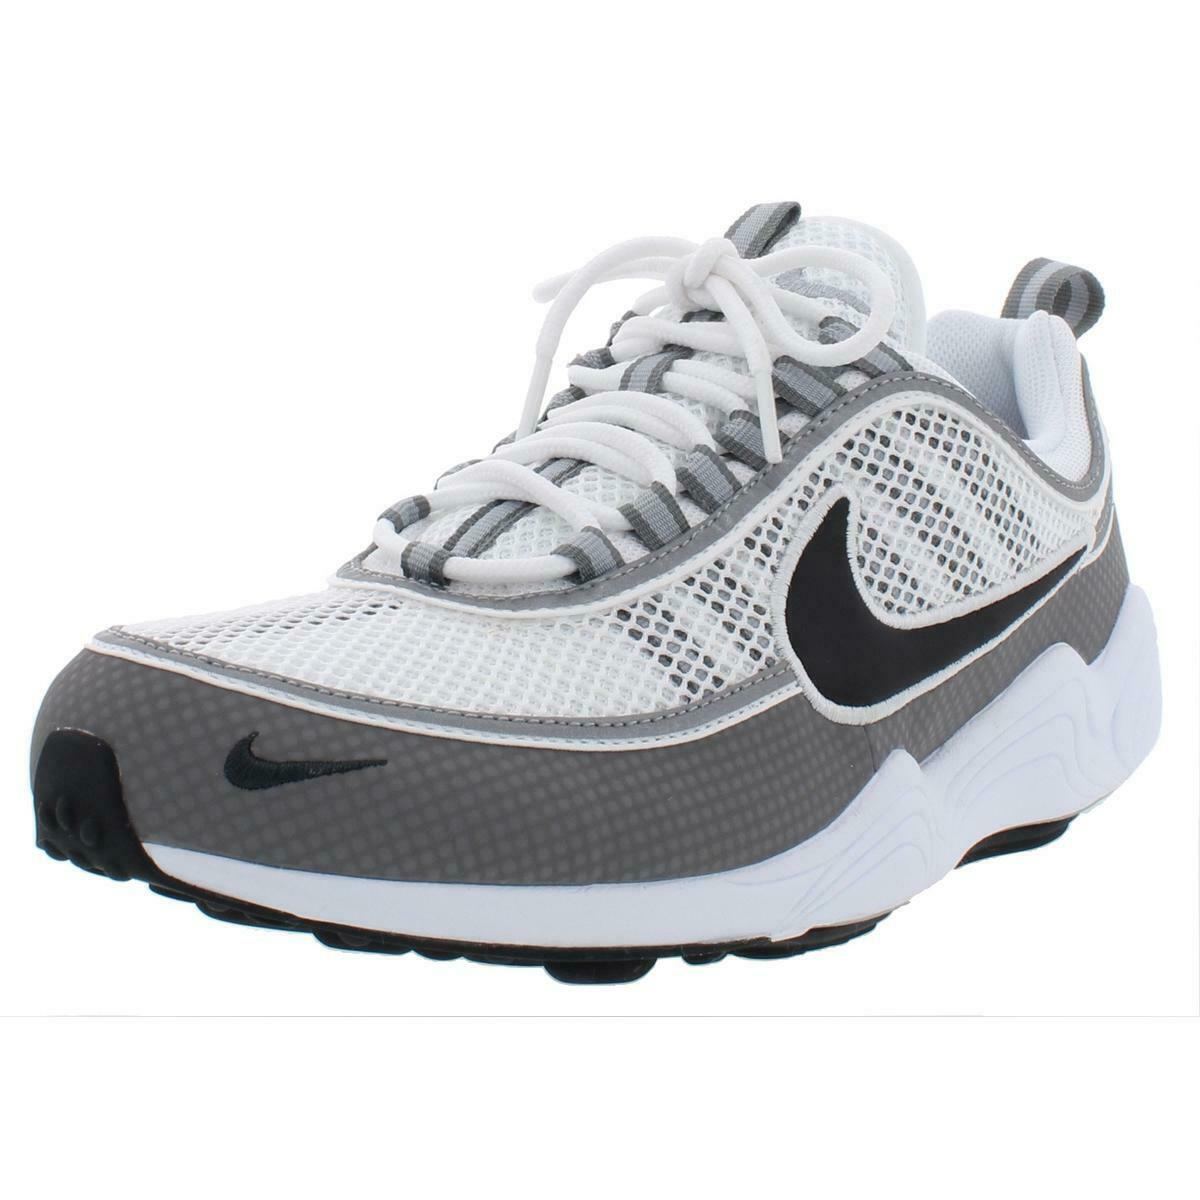 Nike Mens Nike Air Zoom  Breathable Workout Running shoes Sneakers BHFO 3543